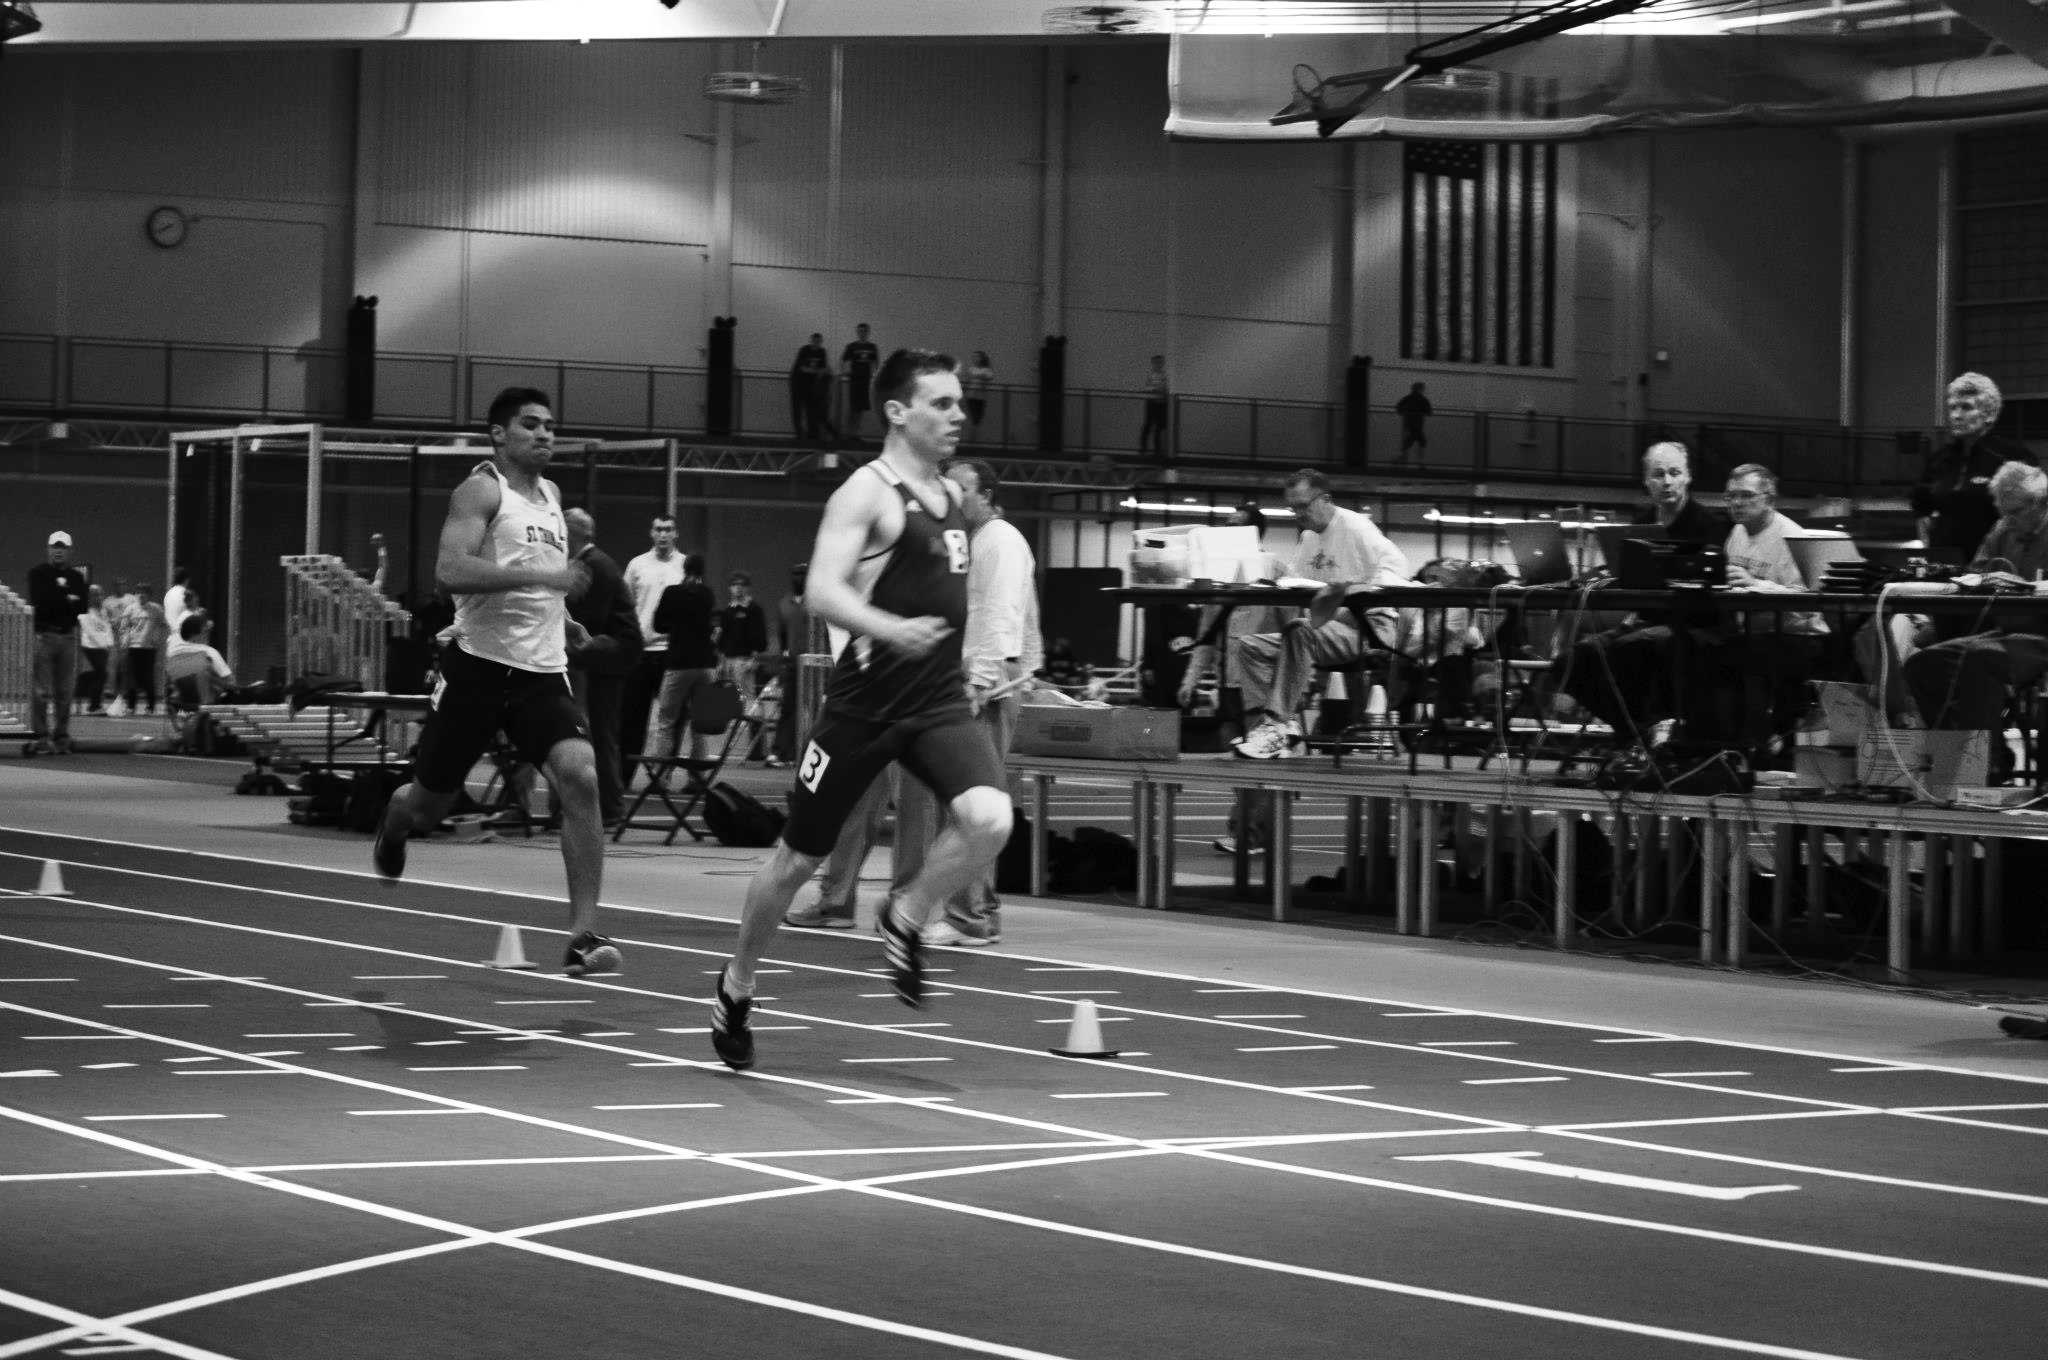 Sebastian+Roemer+%E2%80%9915+finishes+his+800m+race.+Roemer+placed+4th+in+the+4-lap+showdown.+Photo+courtesy+of+Joe+Gibson.